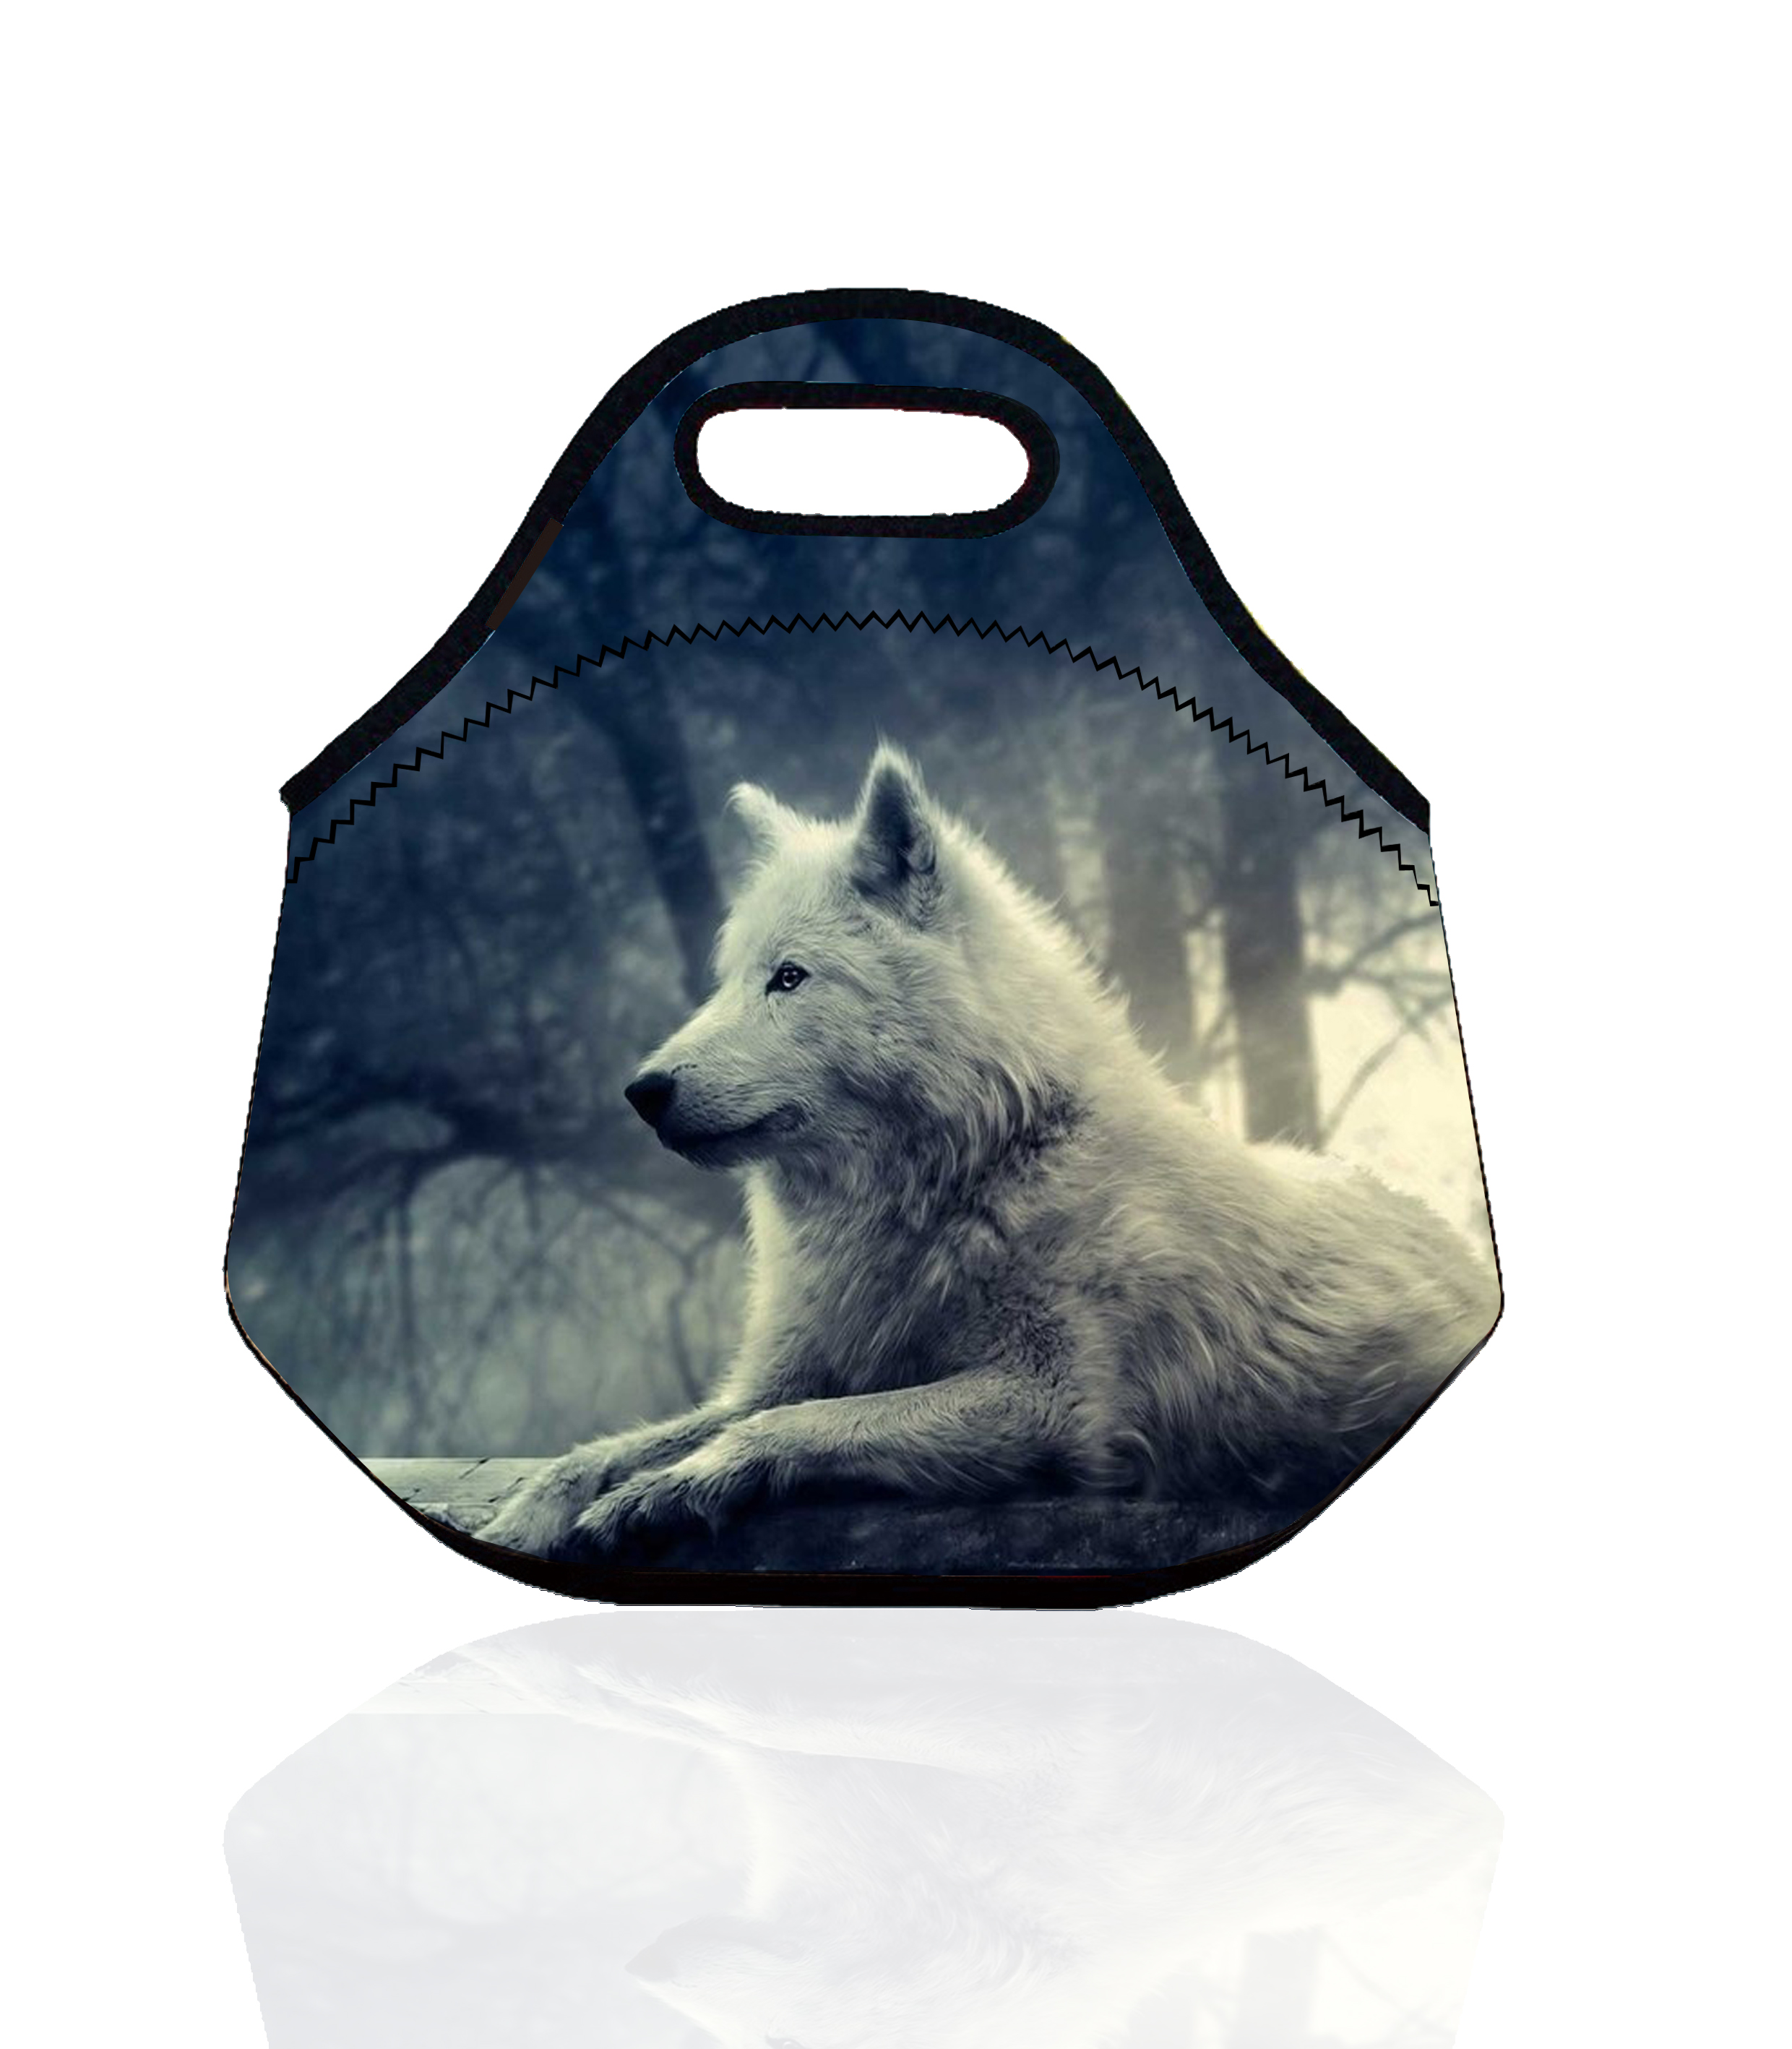 Cute Wolf Portable Insulated Storage Bag Thermal Food Picnic Lunch Bags for Women kids Men Animal Lunch Box Bag bolsa termica